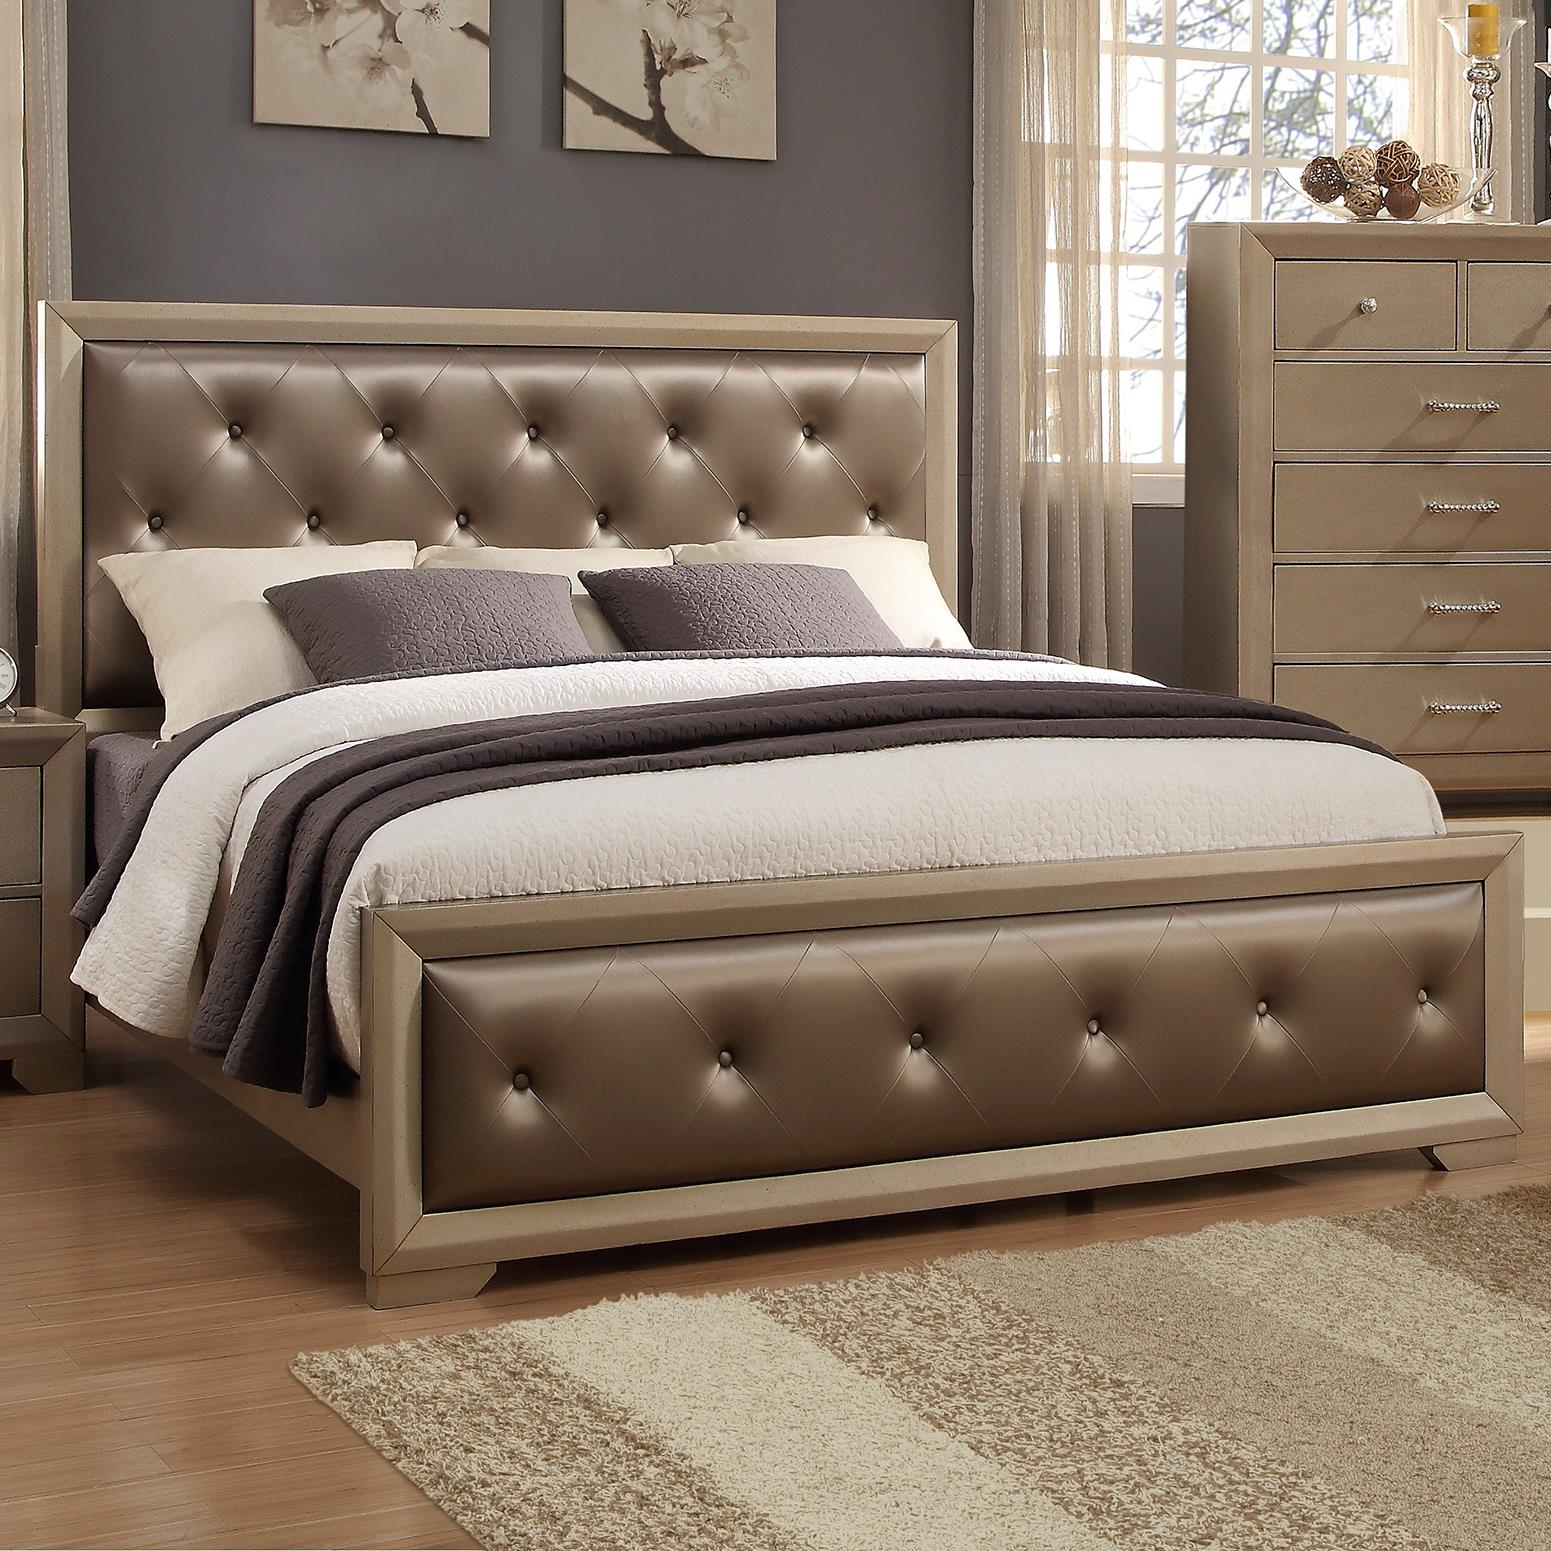 Crown Mark Fontaine Cal King Upholstered Bed - Item Number: B1700-K-FB+K-HB+CK-RAIL